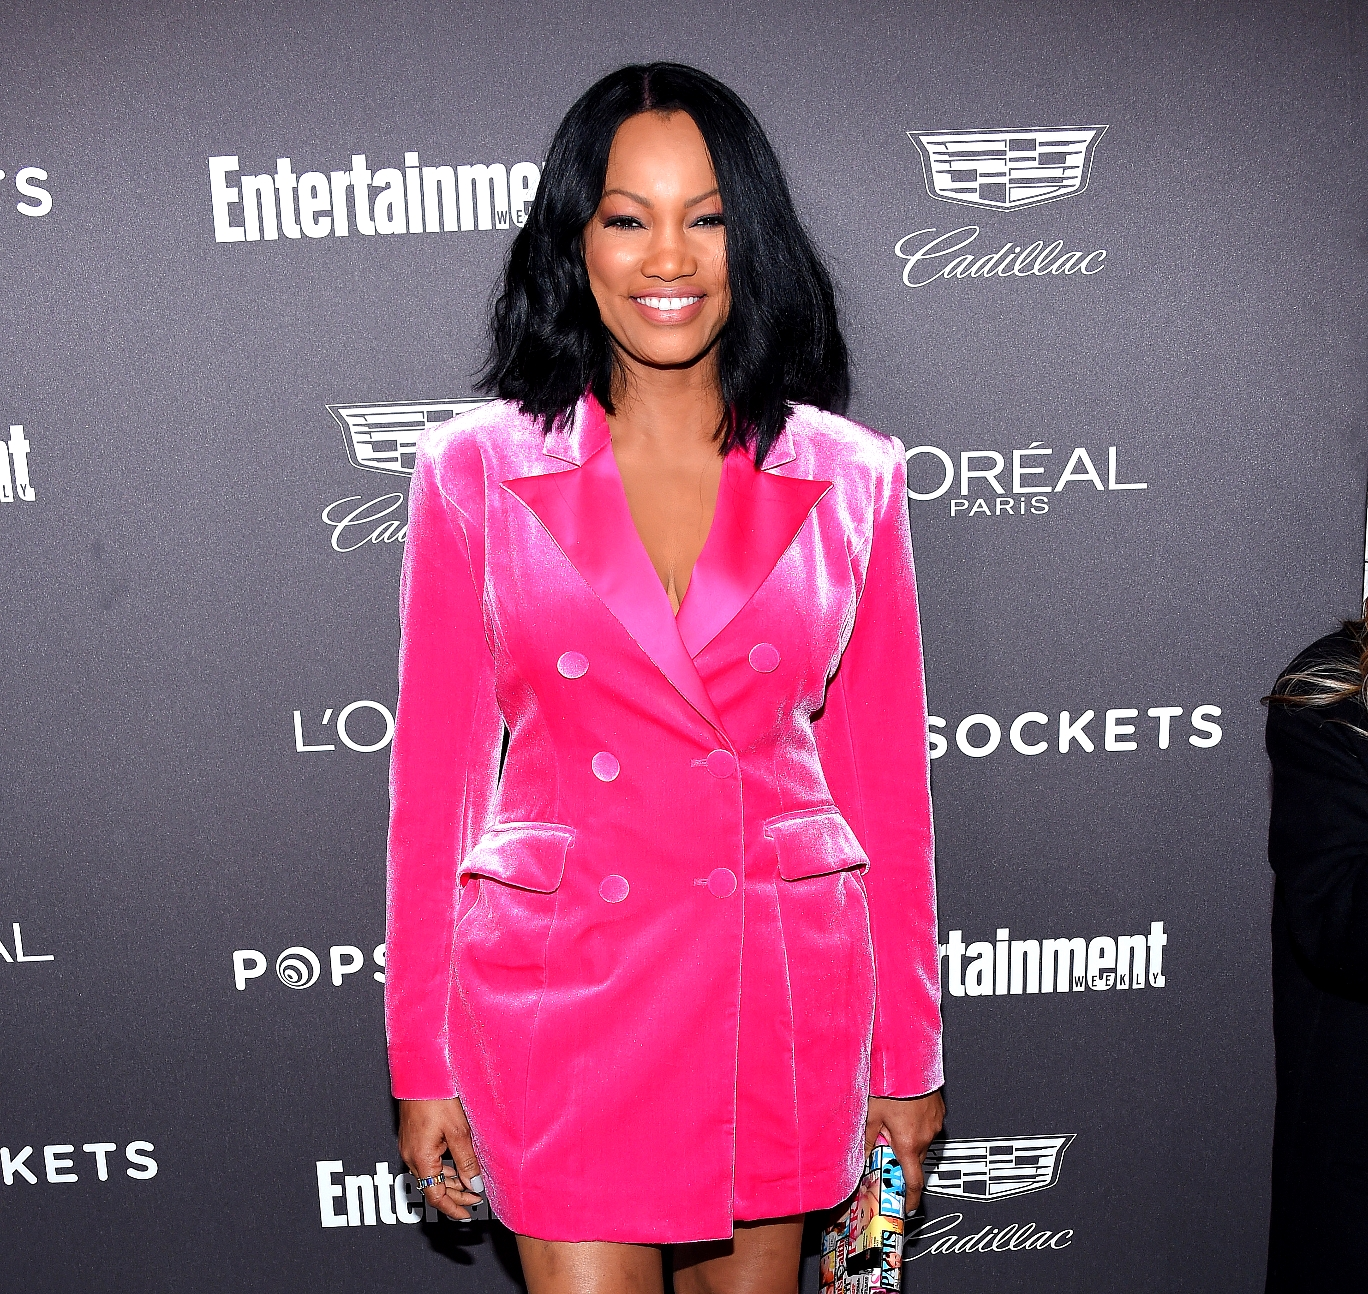 RHOBH Newbie Garcelle Beauvais Reveals How She's Getting Along With Costars, Plus She Dishes on the New Season!